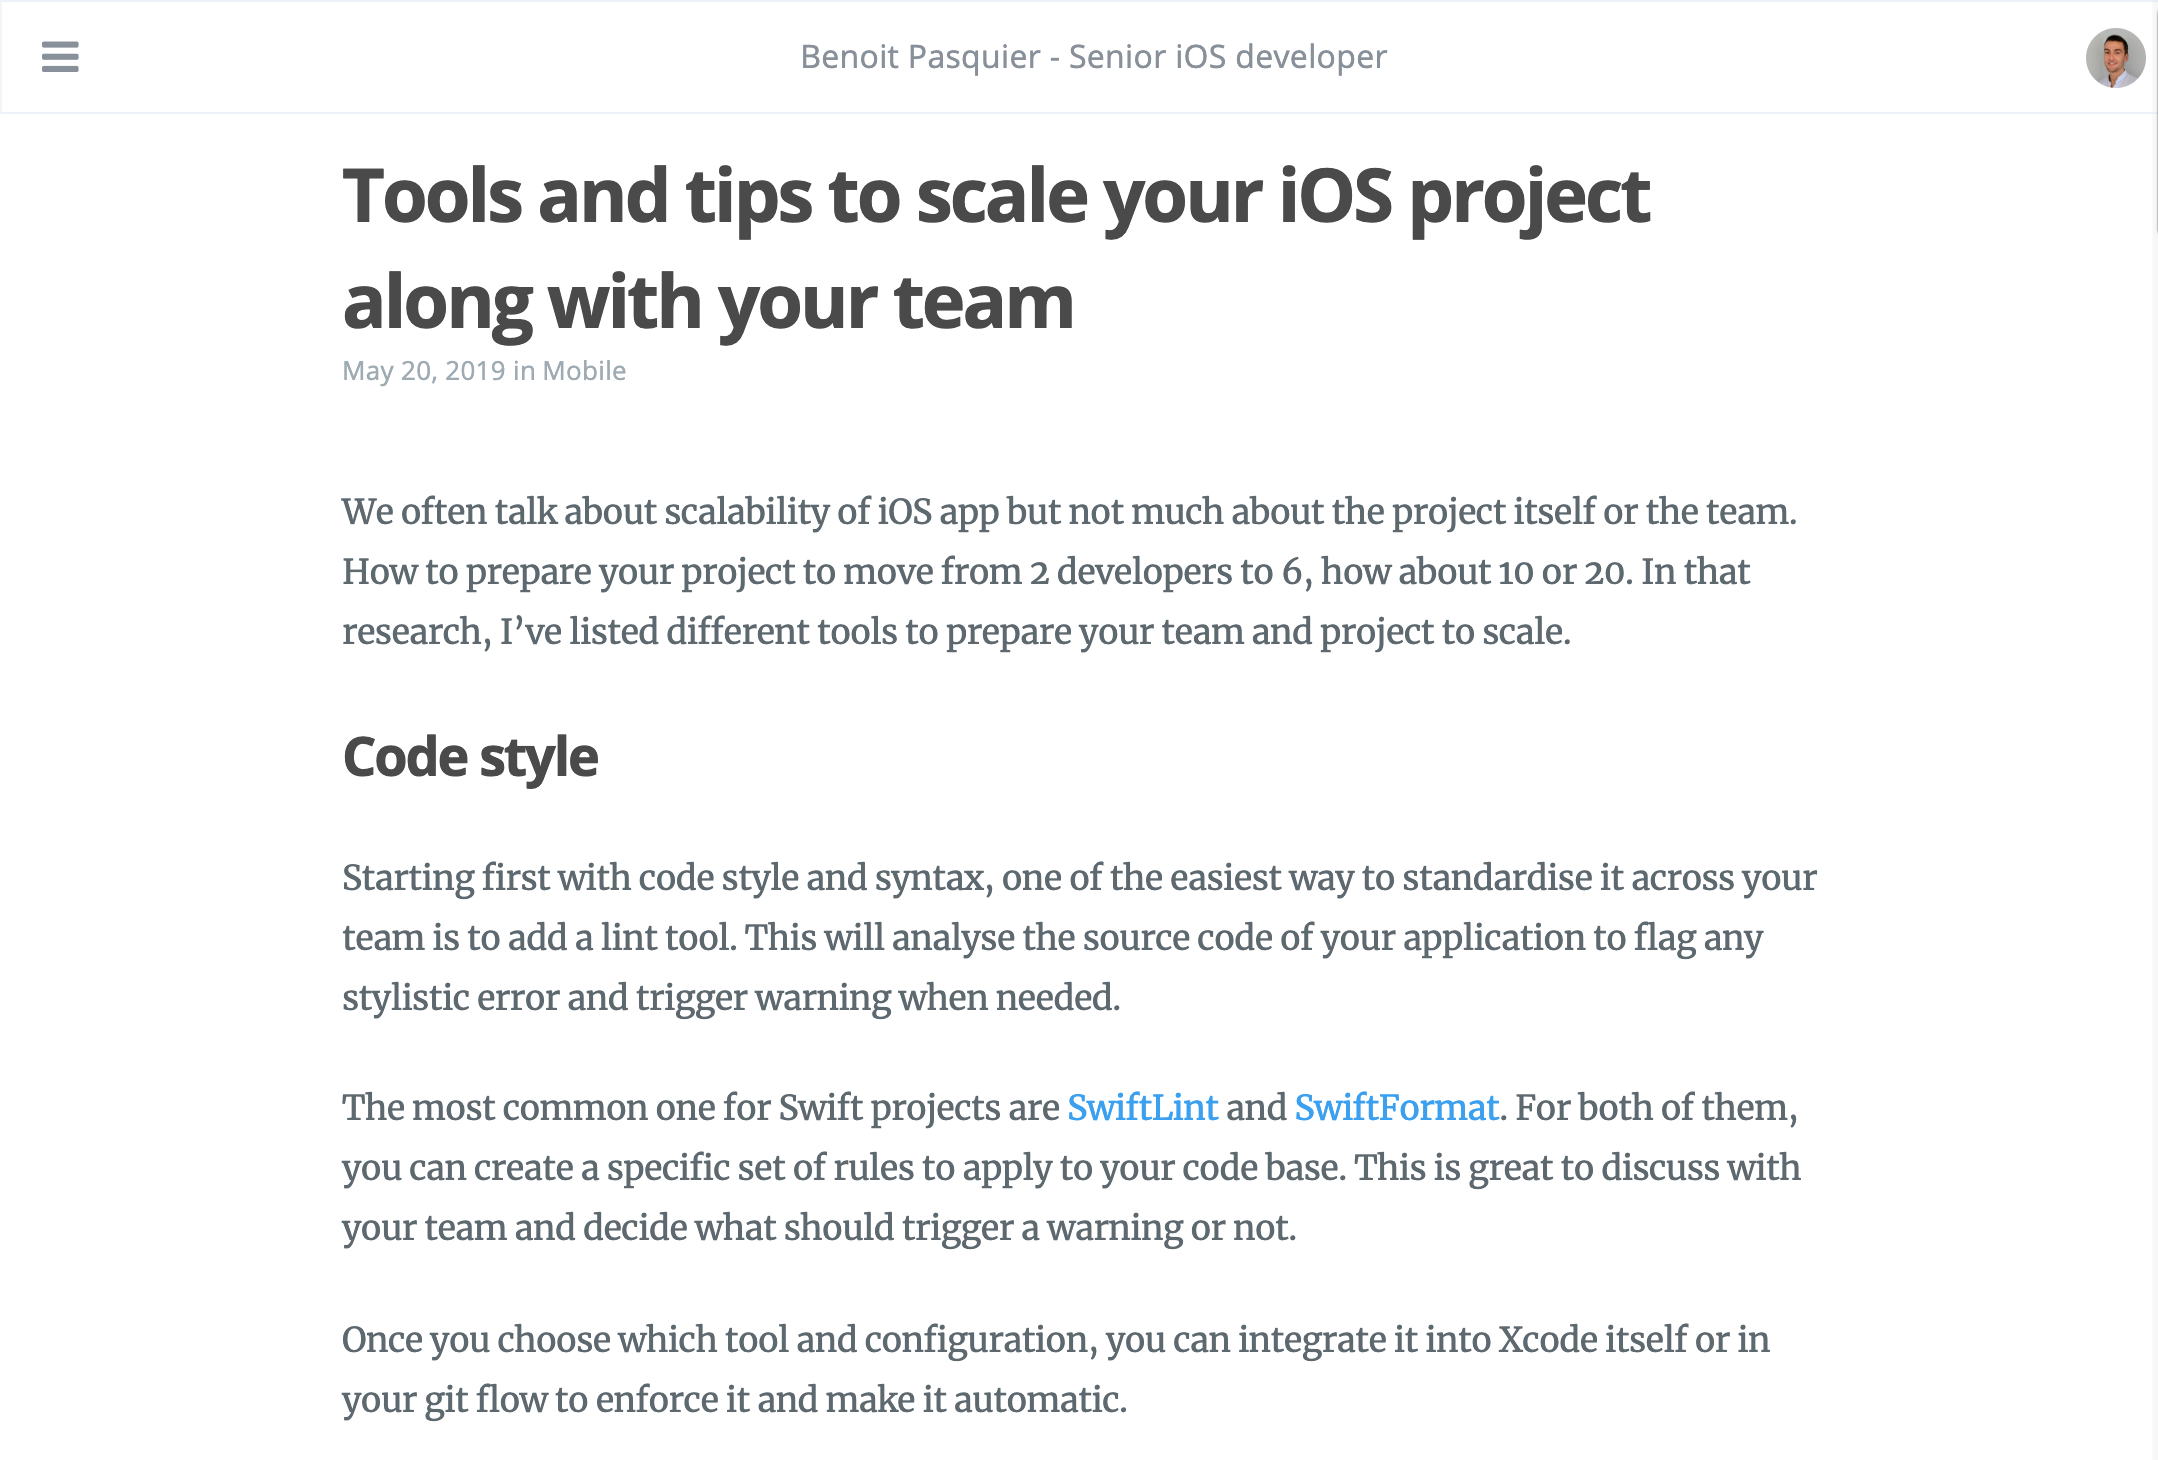 Tools and tips to scale your iOS project along with your team